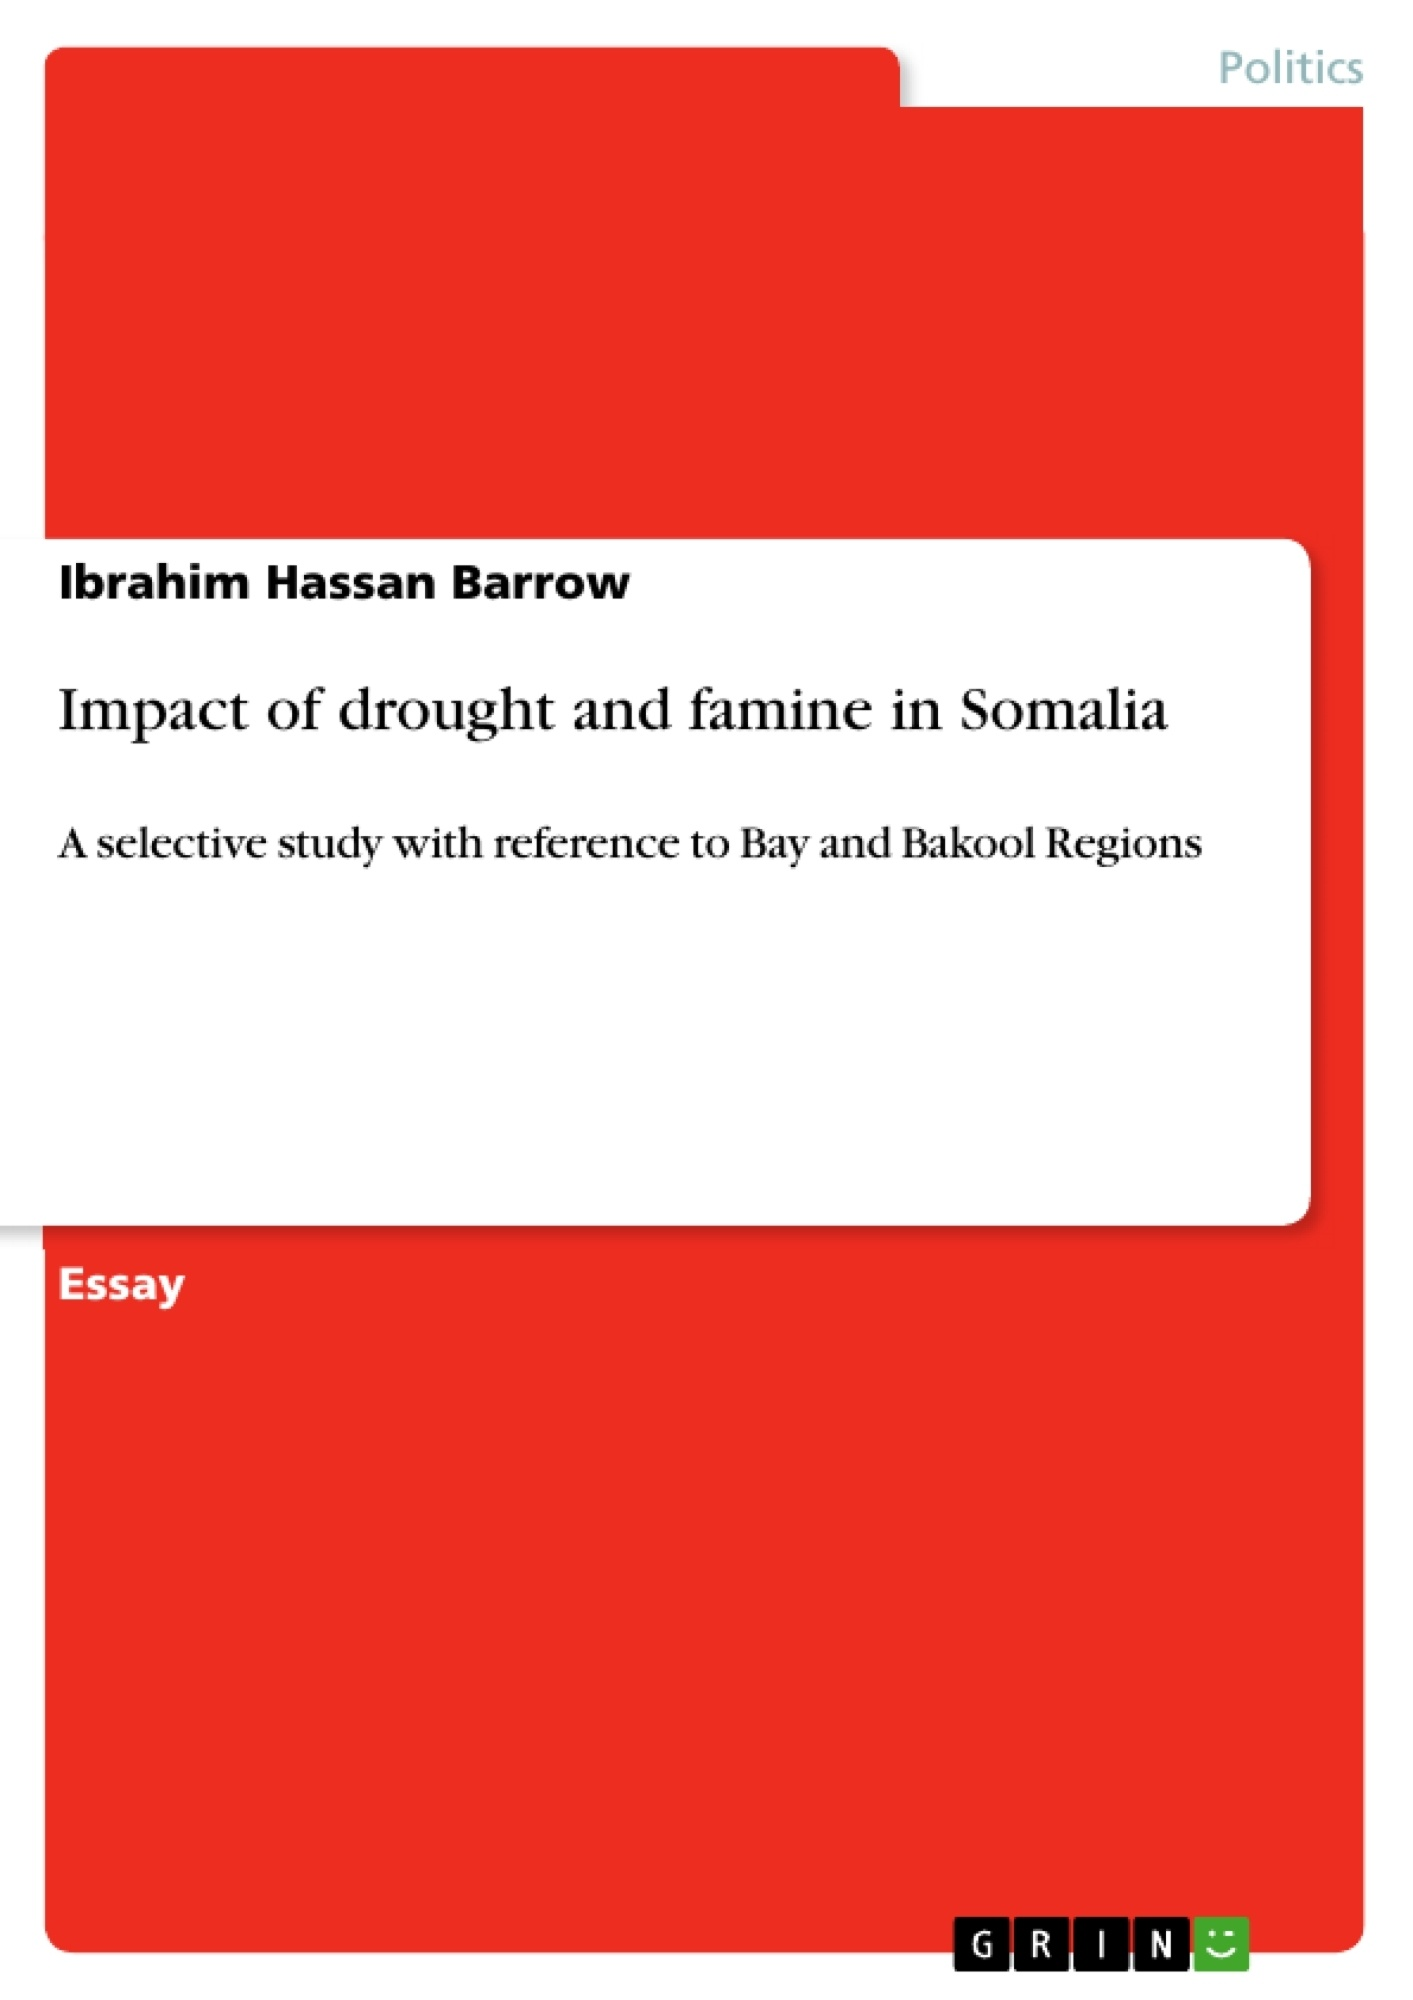 impact of drought and famine in so a publish your master s  upload your own papers earn money and win an iphone x